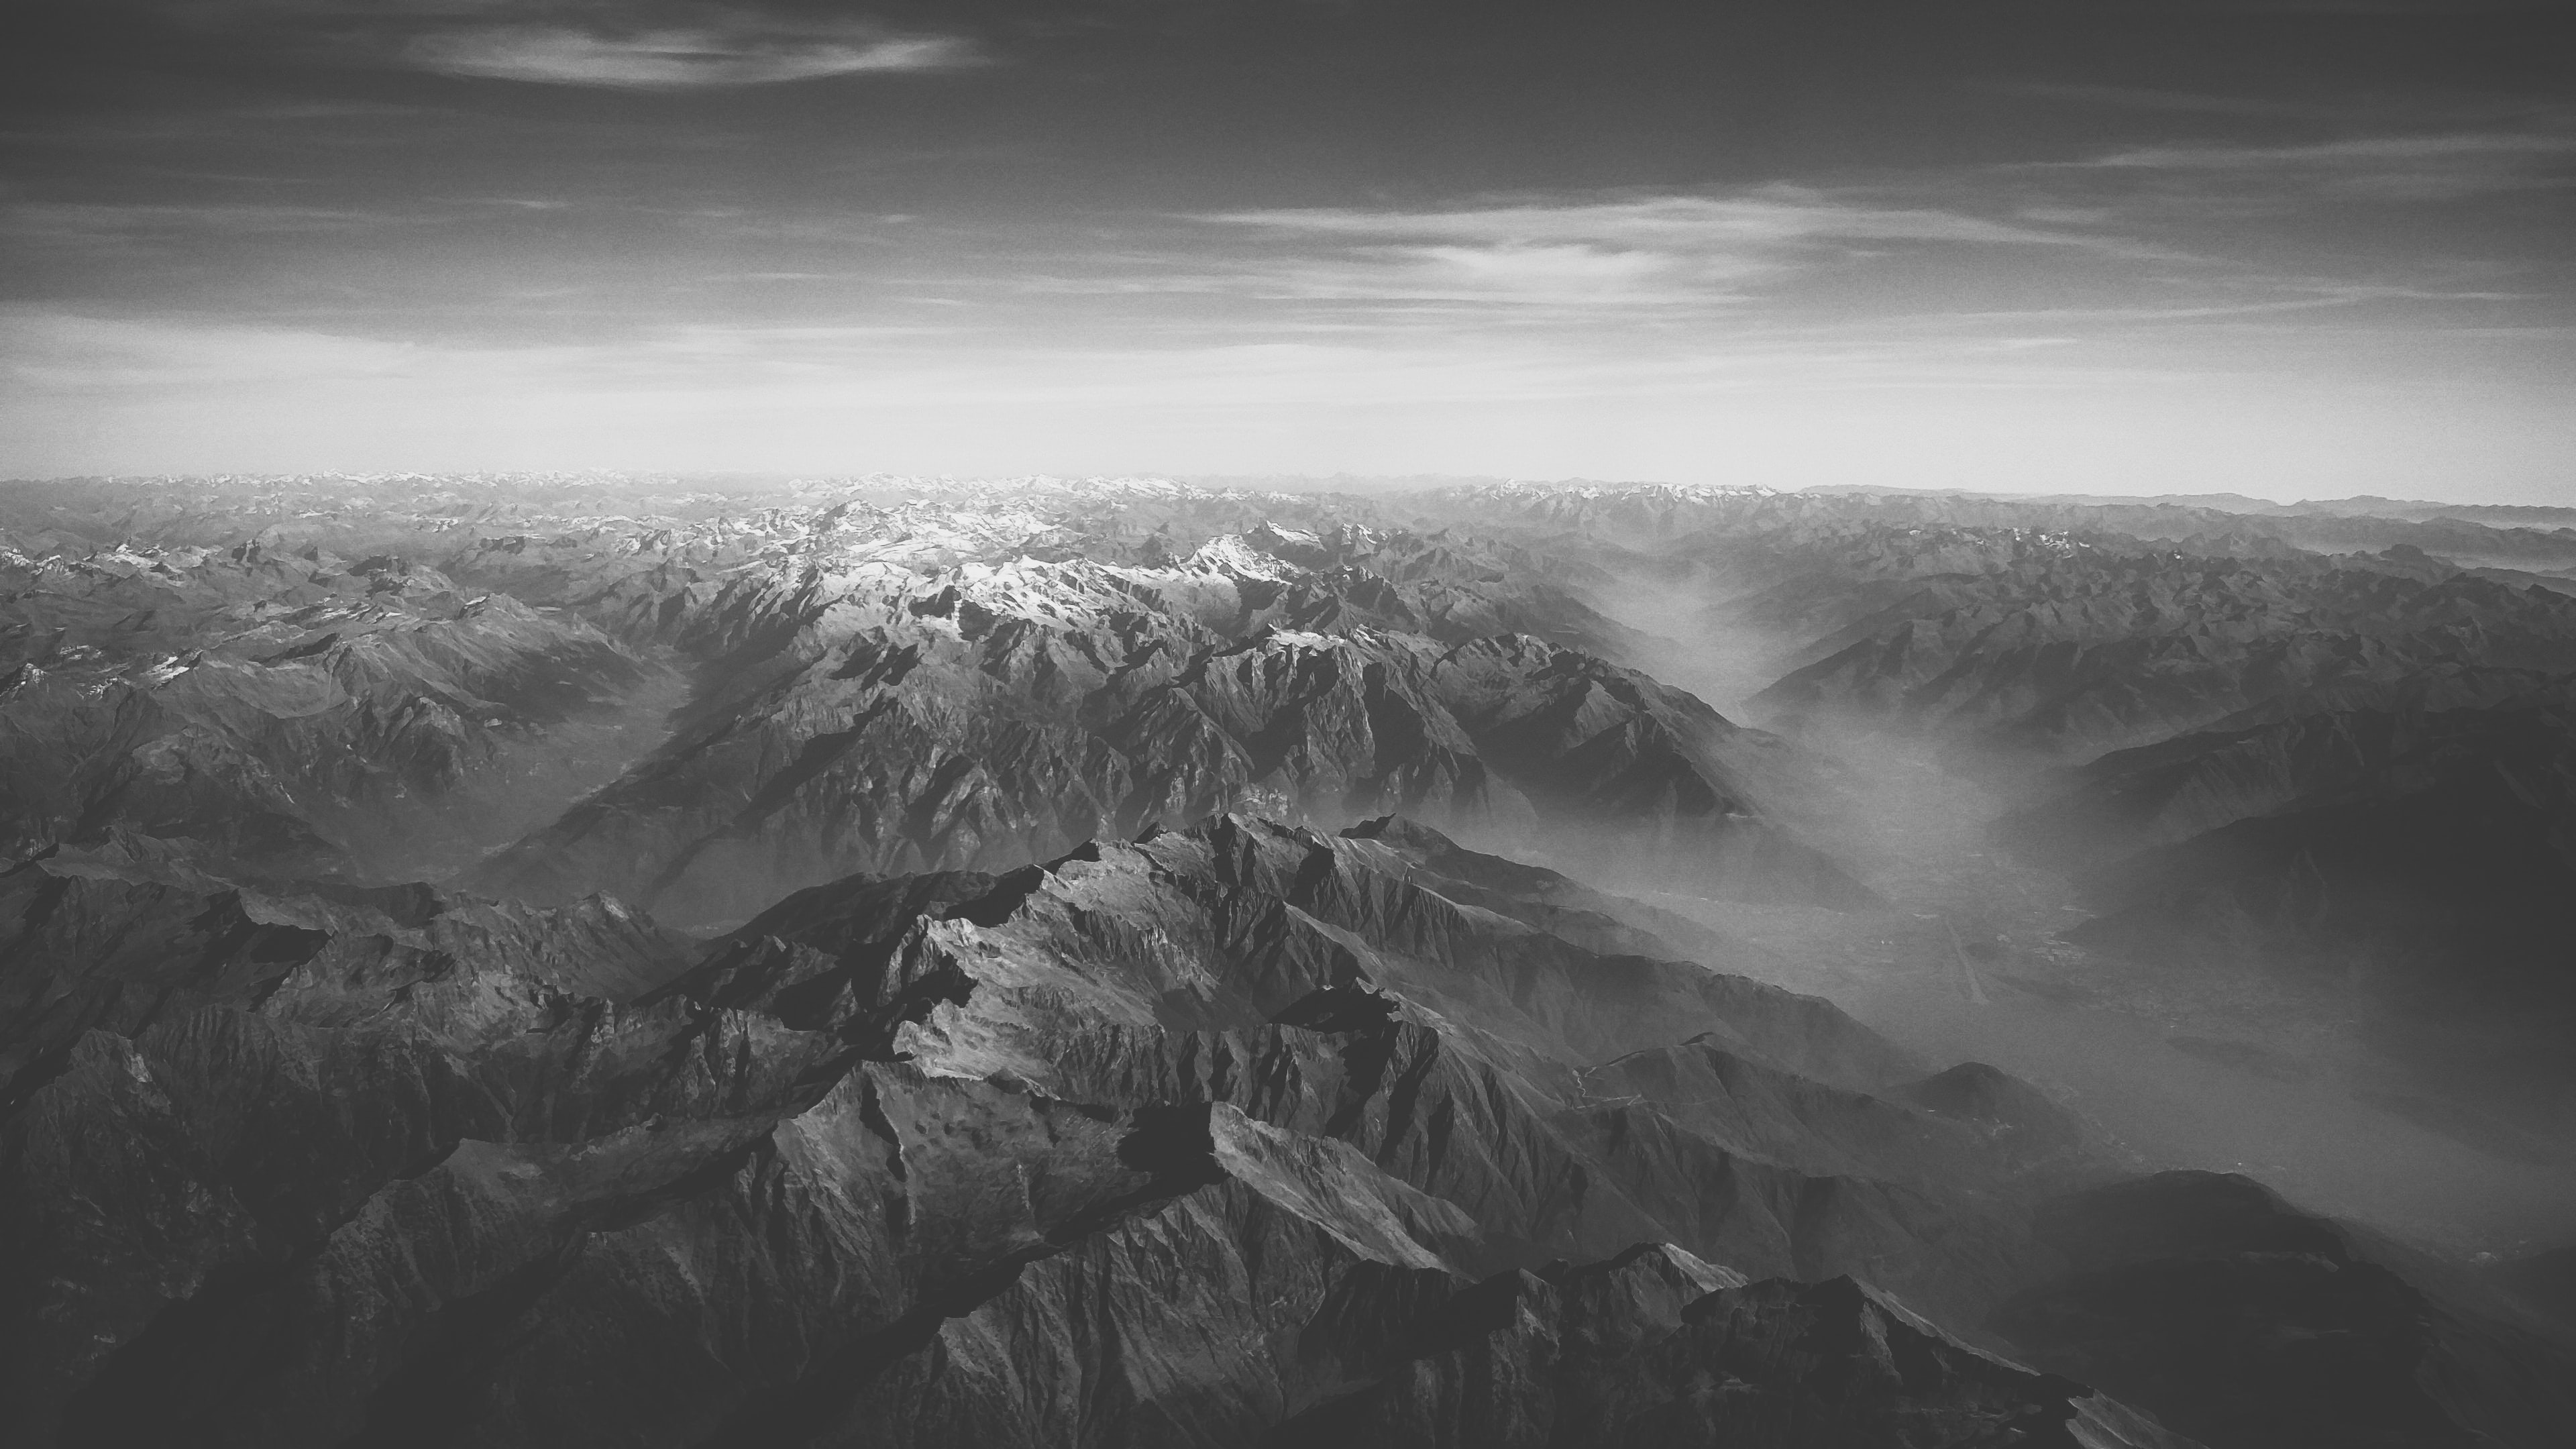 A black-and-white shot of a vast mountainous area